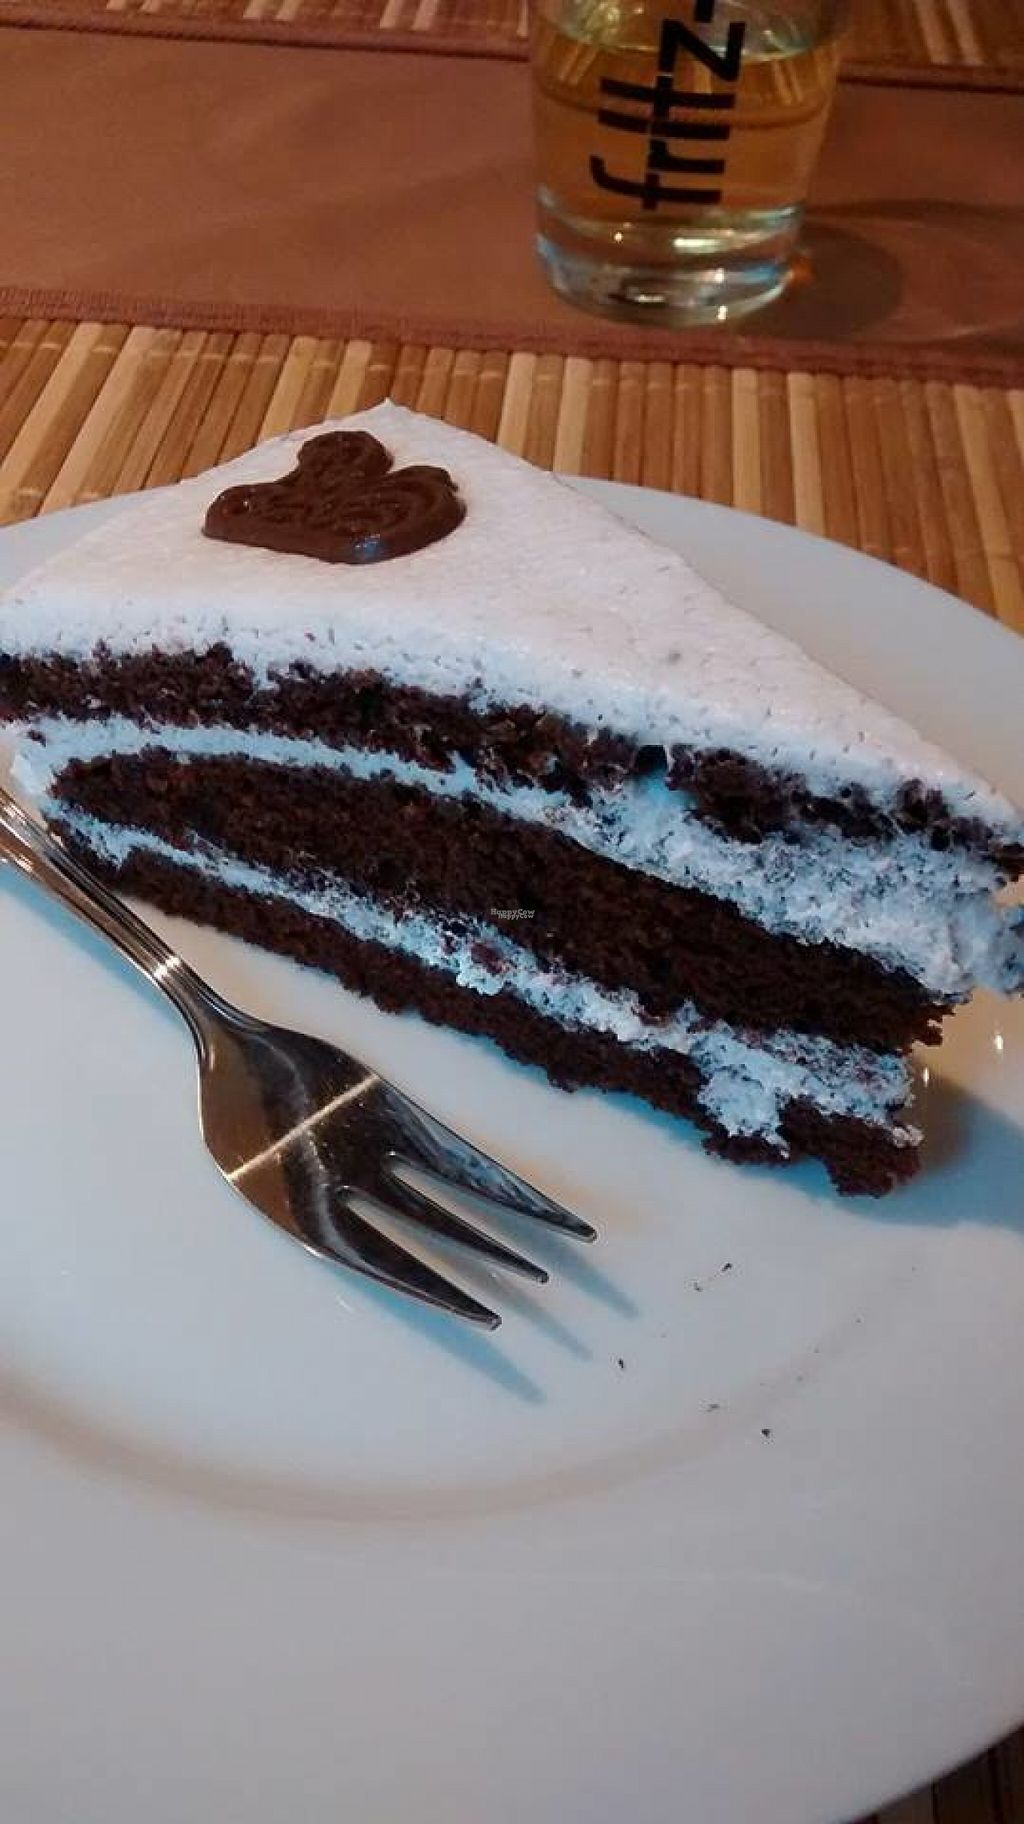 """Photo of Loving Hut - St Georg  by <a href=""""/members/profile/BlisterBlue"""">BlisterBlue</a> <br/>This cake was beyond perfect, felt like I was biting a cloud haha <br/> November 2, 2016  - <a href='/contact/abuse/image/69030/186109'>Report</a>"""